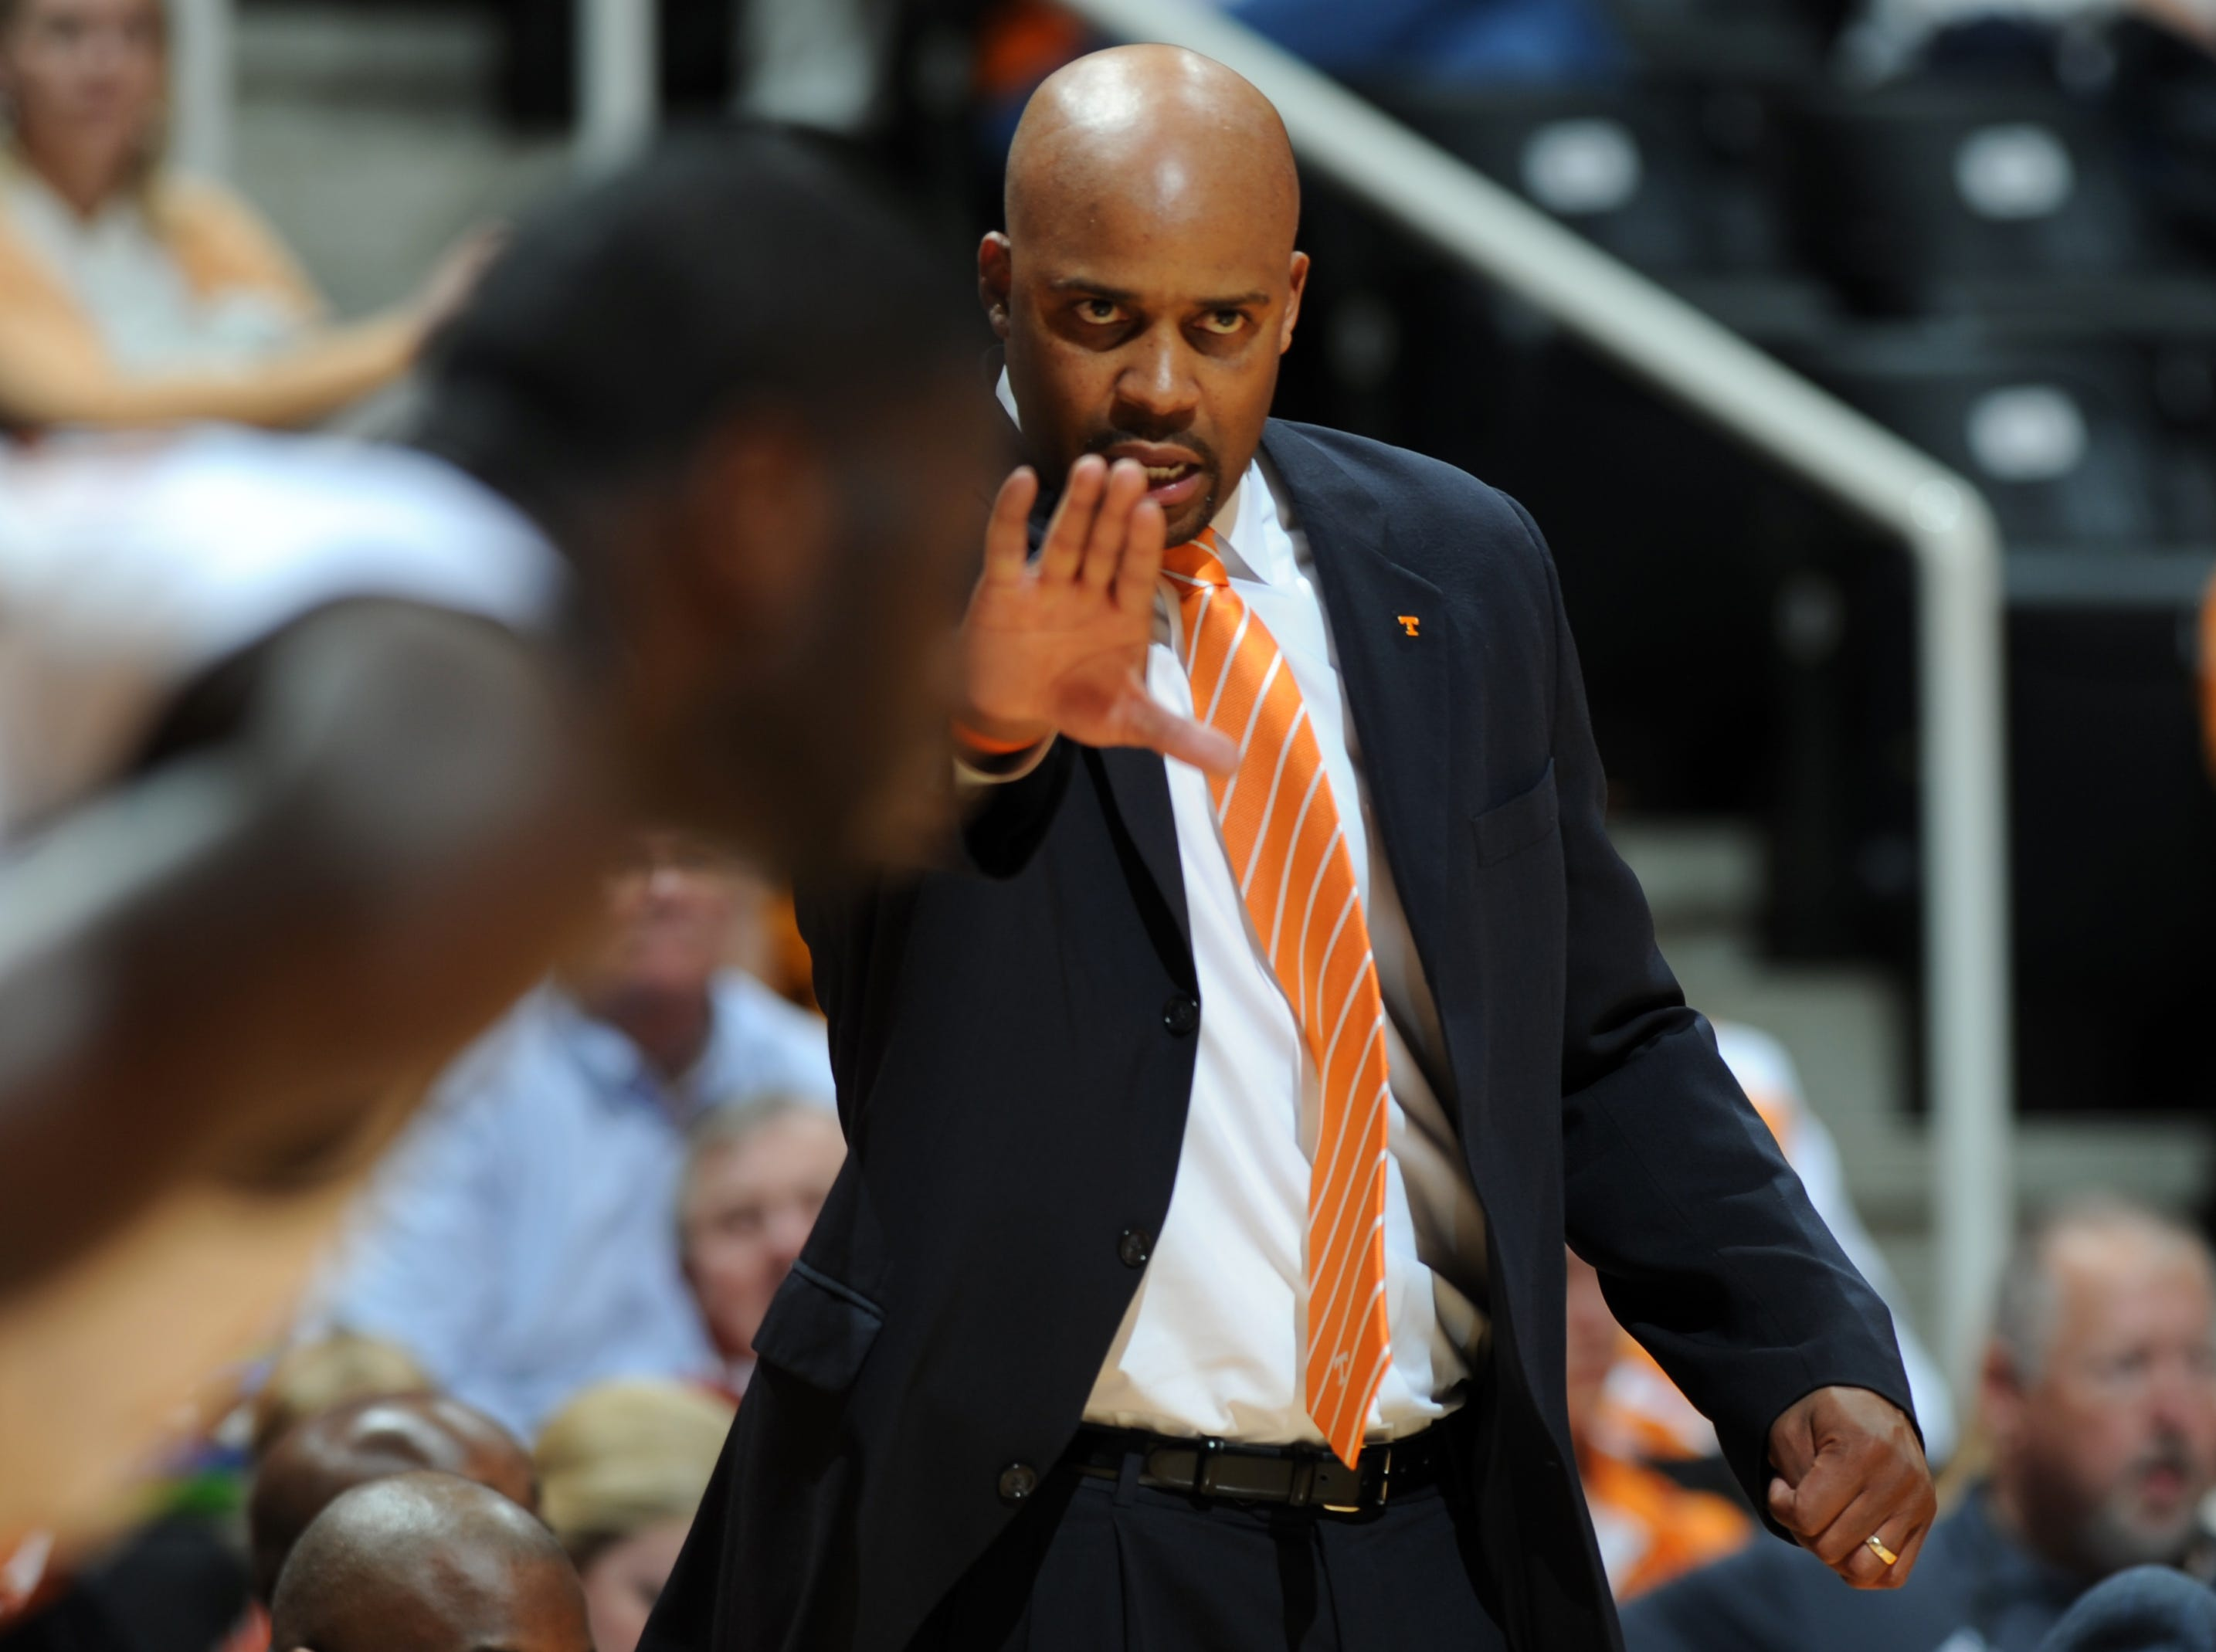 Tennessee head coach Cuonzo Martin signals to his players as they play Louisiana-Monroe at Thompson-Boling Arena Wednesday, Nov. 16, 2011.  The Vols won 85-62 over the Warhawks.